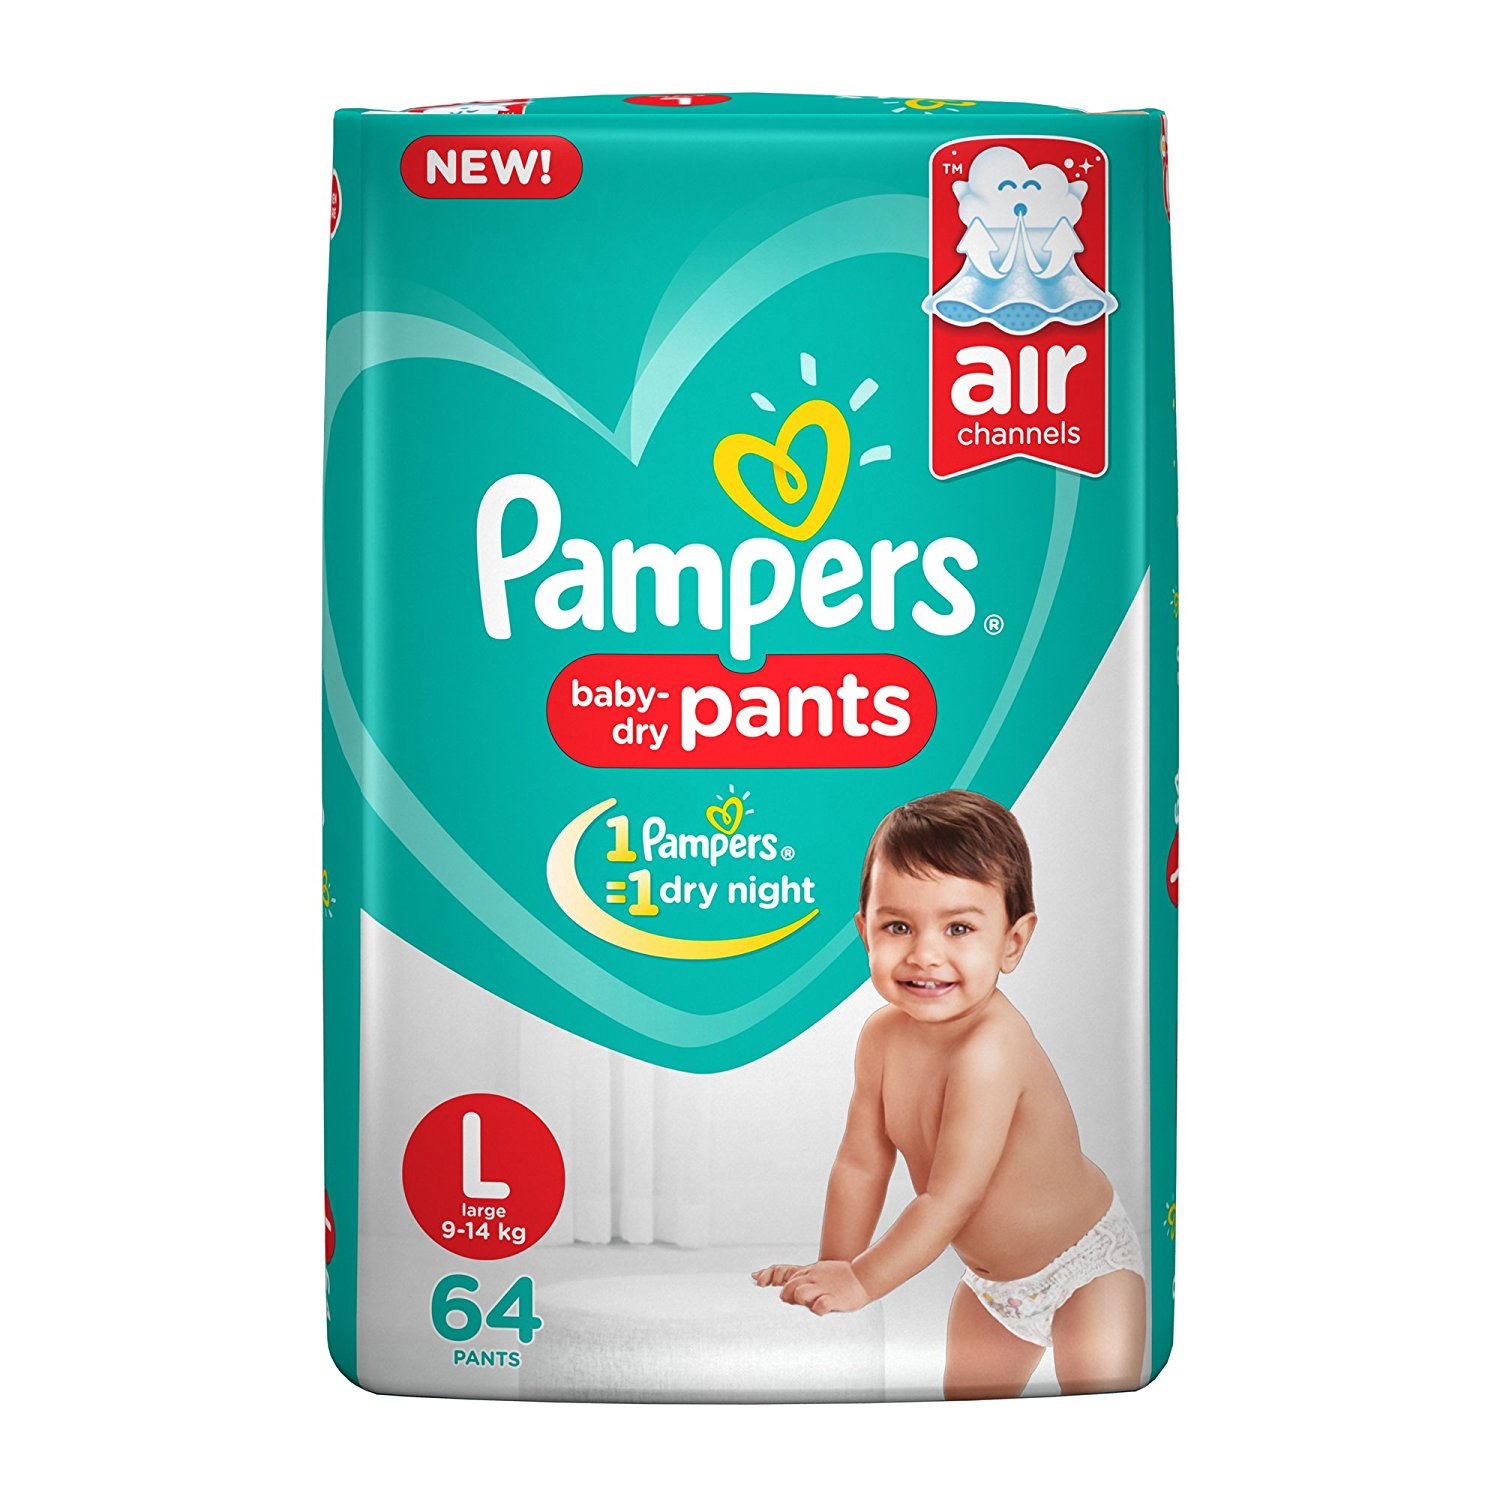 Pampers New Large Size Diapers Pants (64 Count)